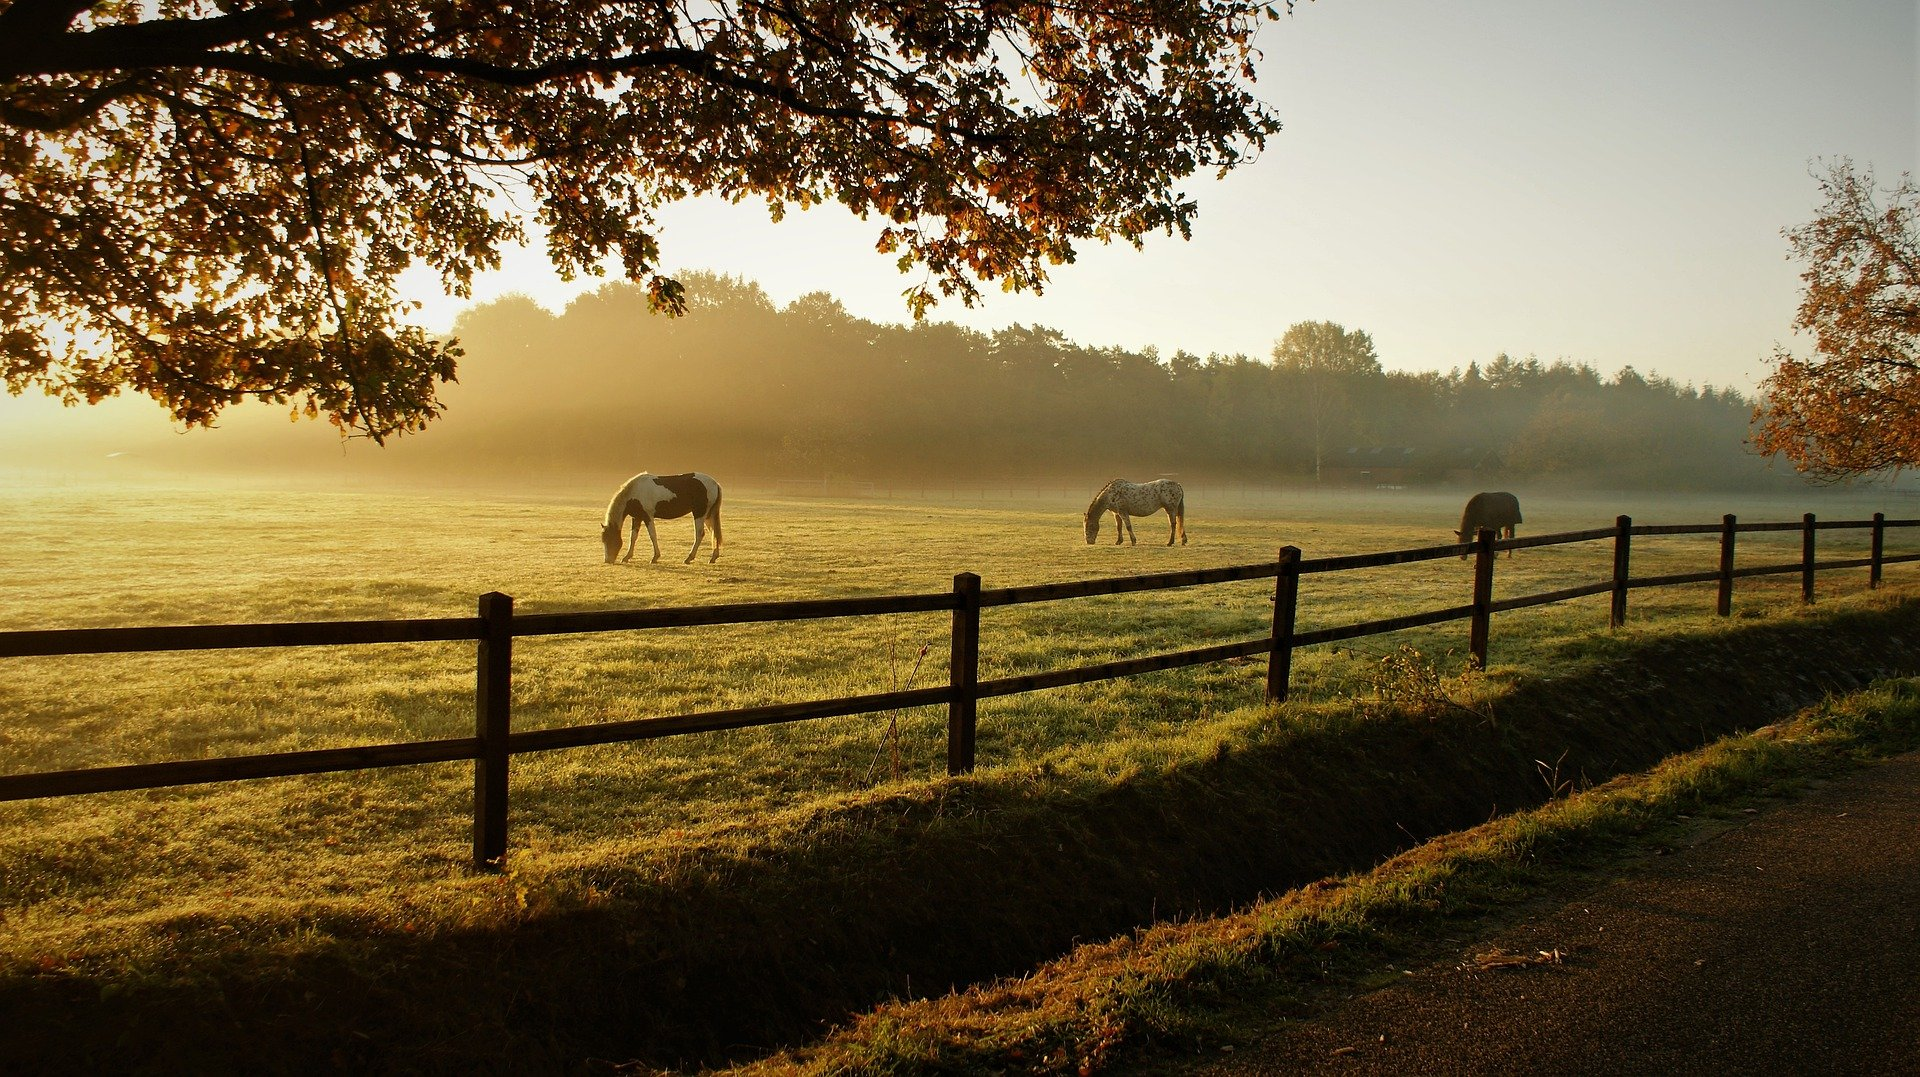 Pictured - Horses grazing on a ranch   Source: Pixabay